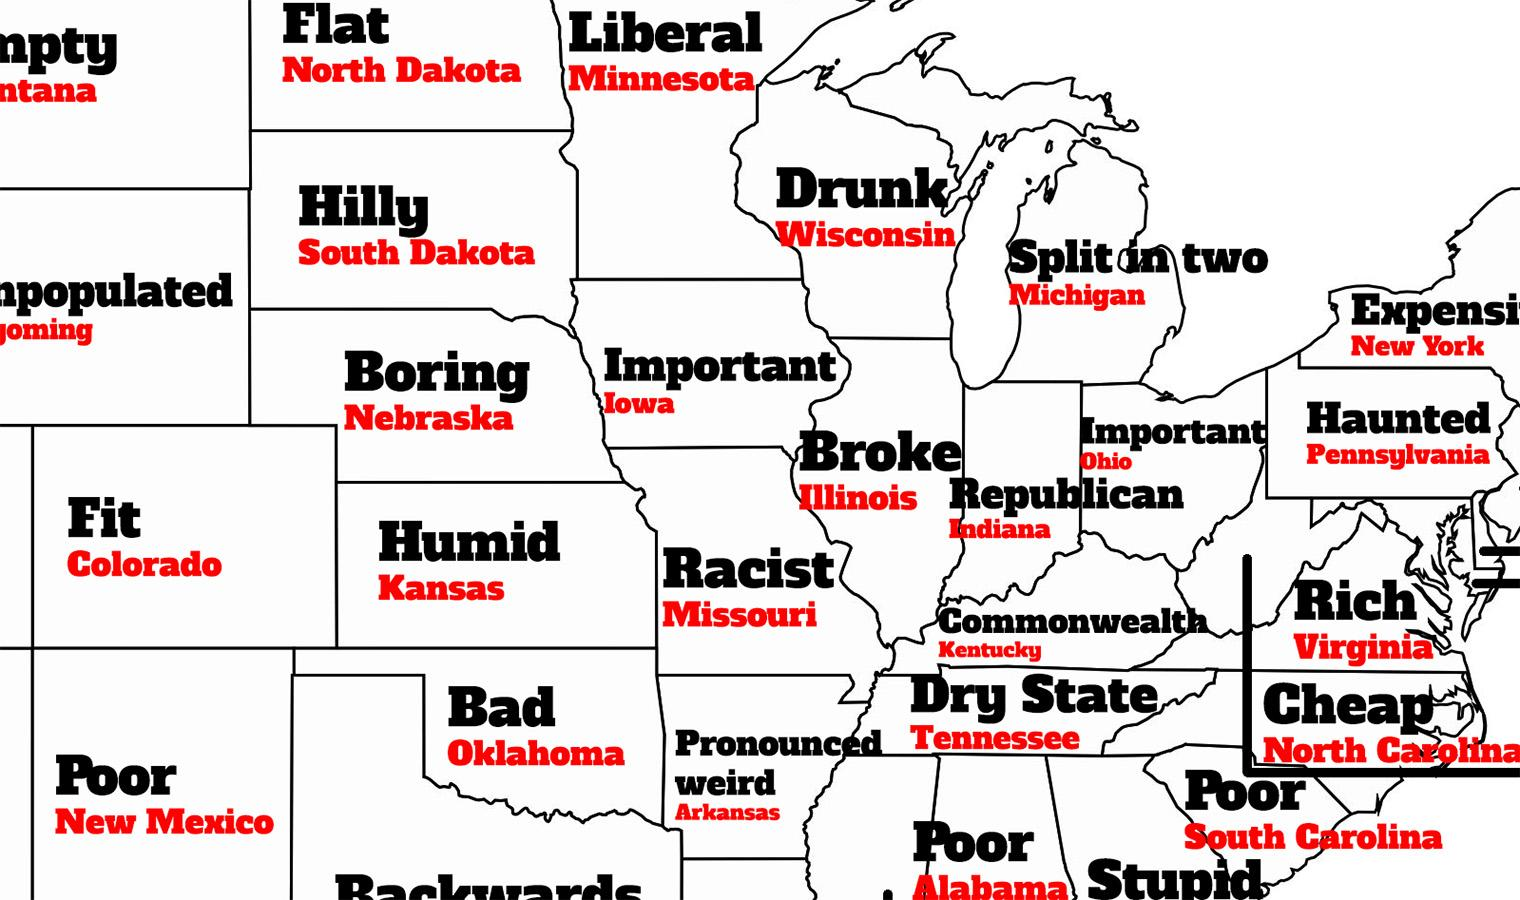 The stereotype map of America according to Brits | indy100 on architecture of alabama, school of alabama, education of alabama, hate of alabama,